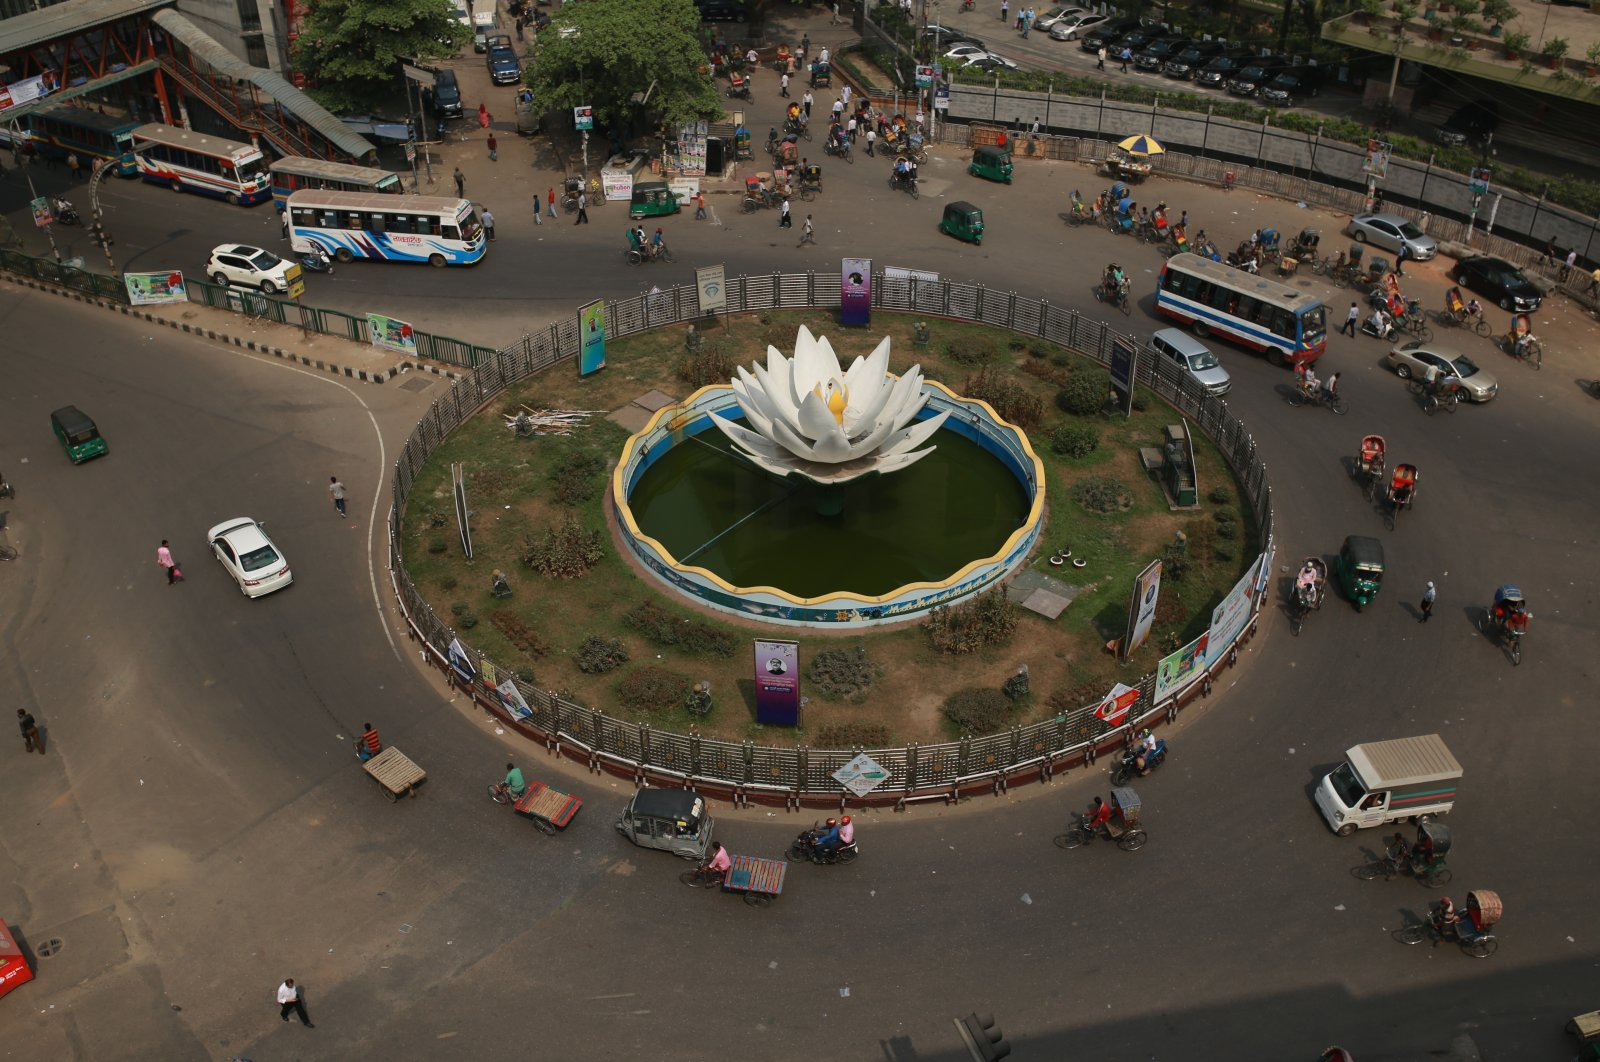 A general view of Motijheel intersection amid the deadly coronavirus pandemic, Dhaka, Bangladesh, March 28, 2021. (Photo by Getty Images)